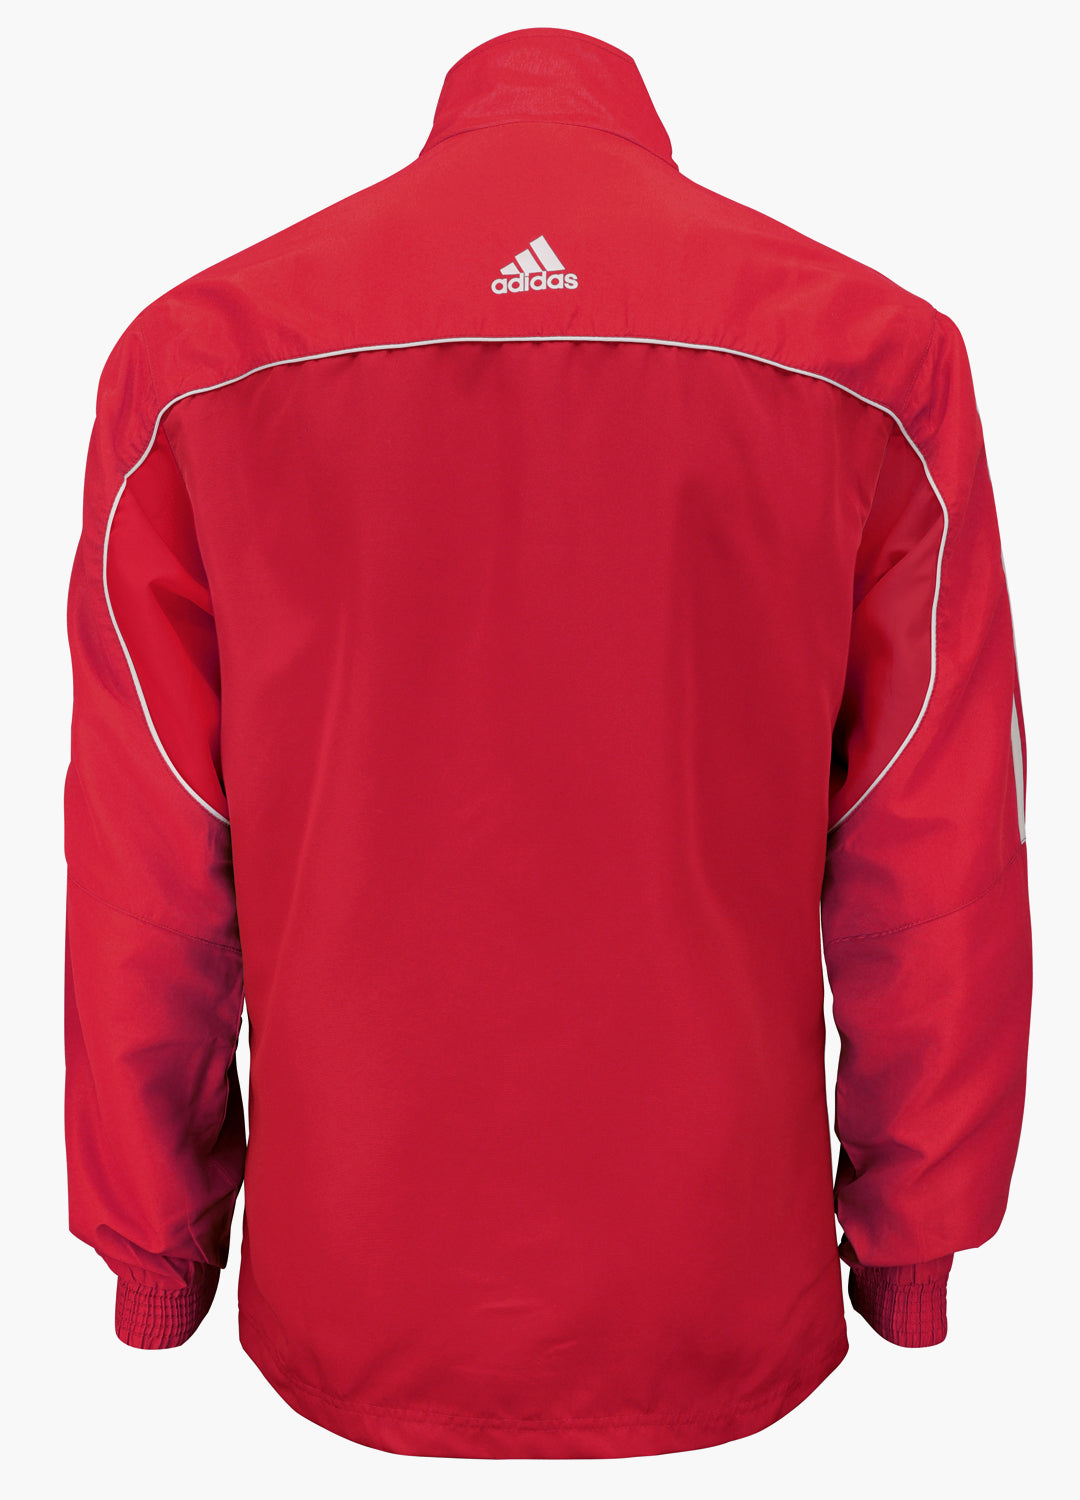 adidas Red with White Stripes Windbreaker Style Team Jacket Back View